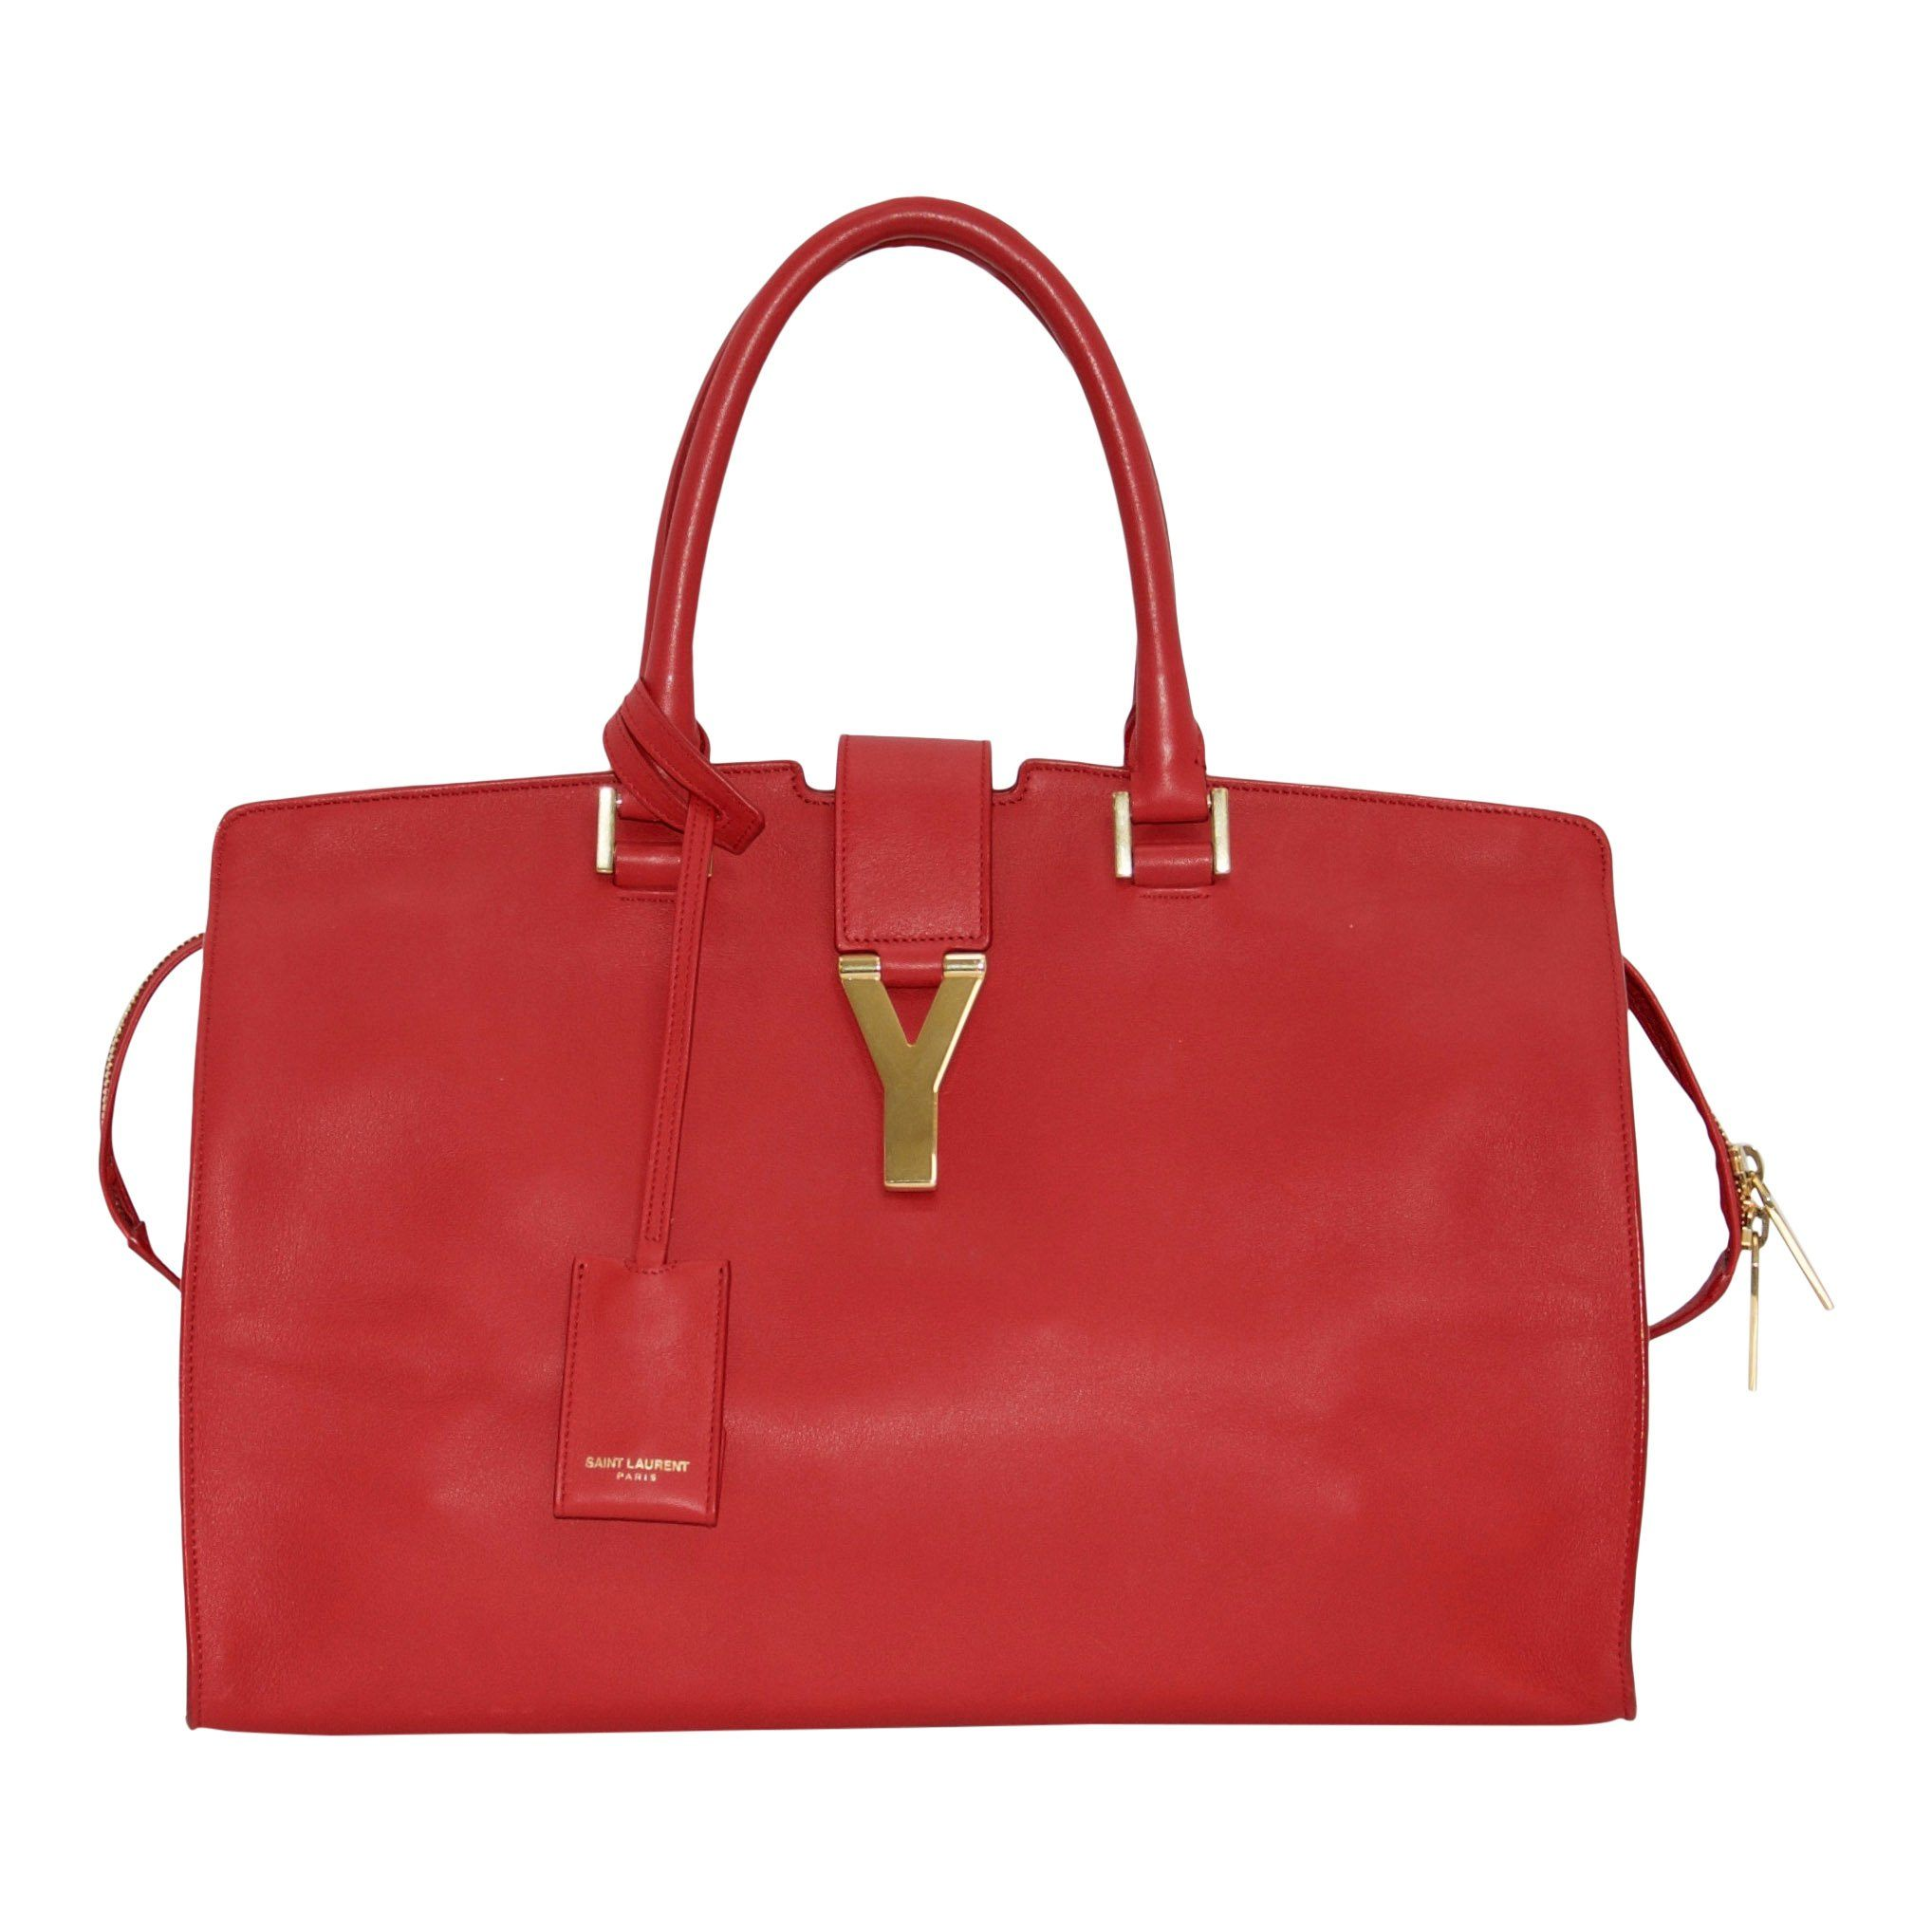 3f909b0a1 Yves Saint Laurent Large Cabas Chyc Bag– Oliver Jewellery